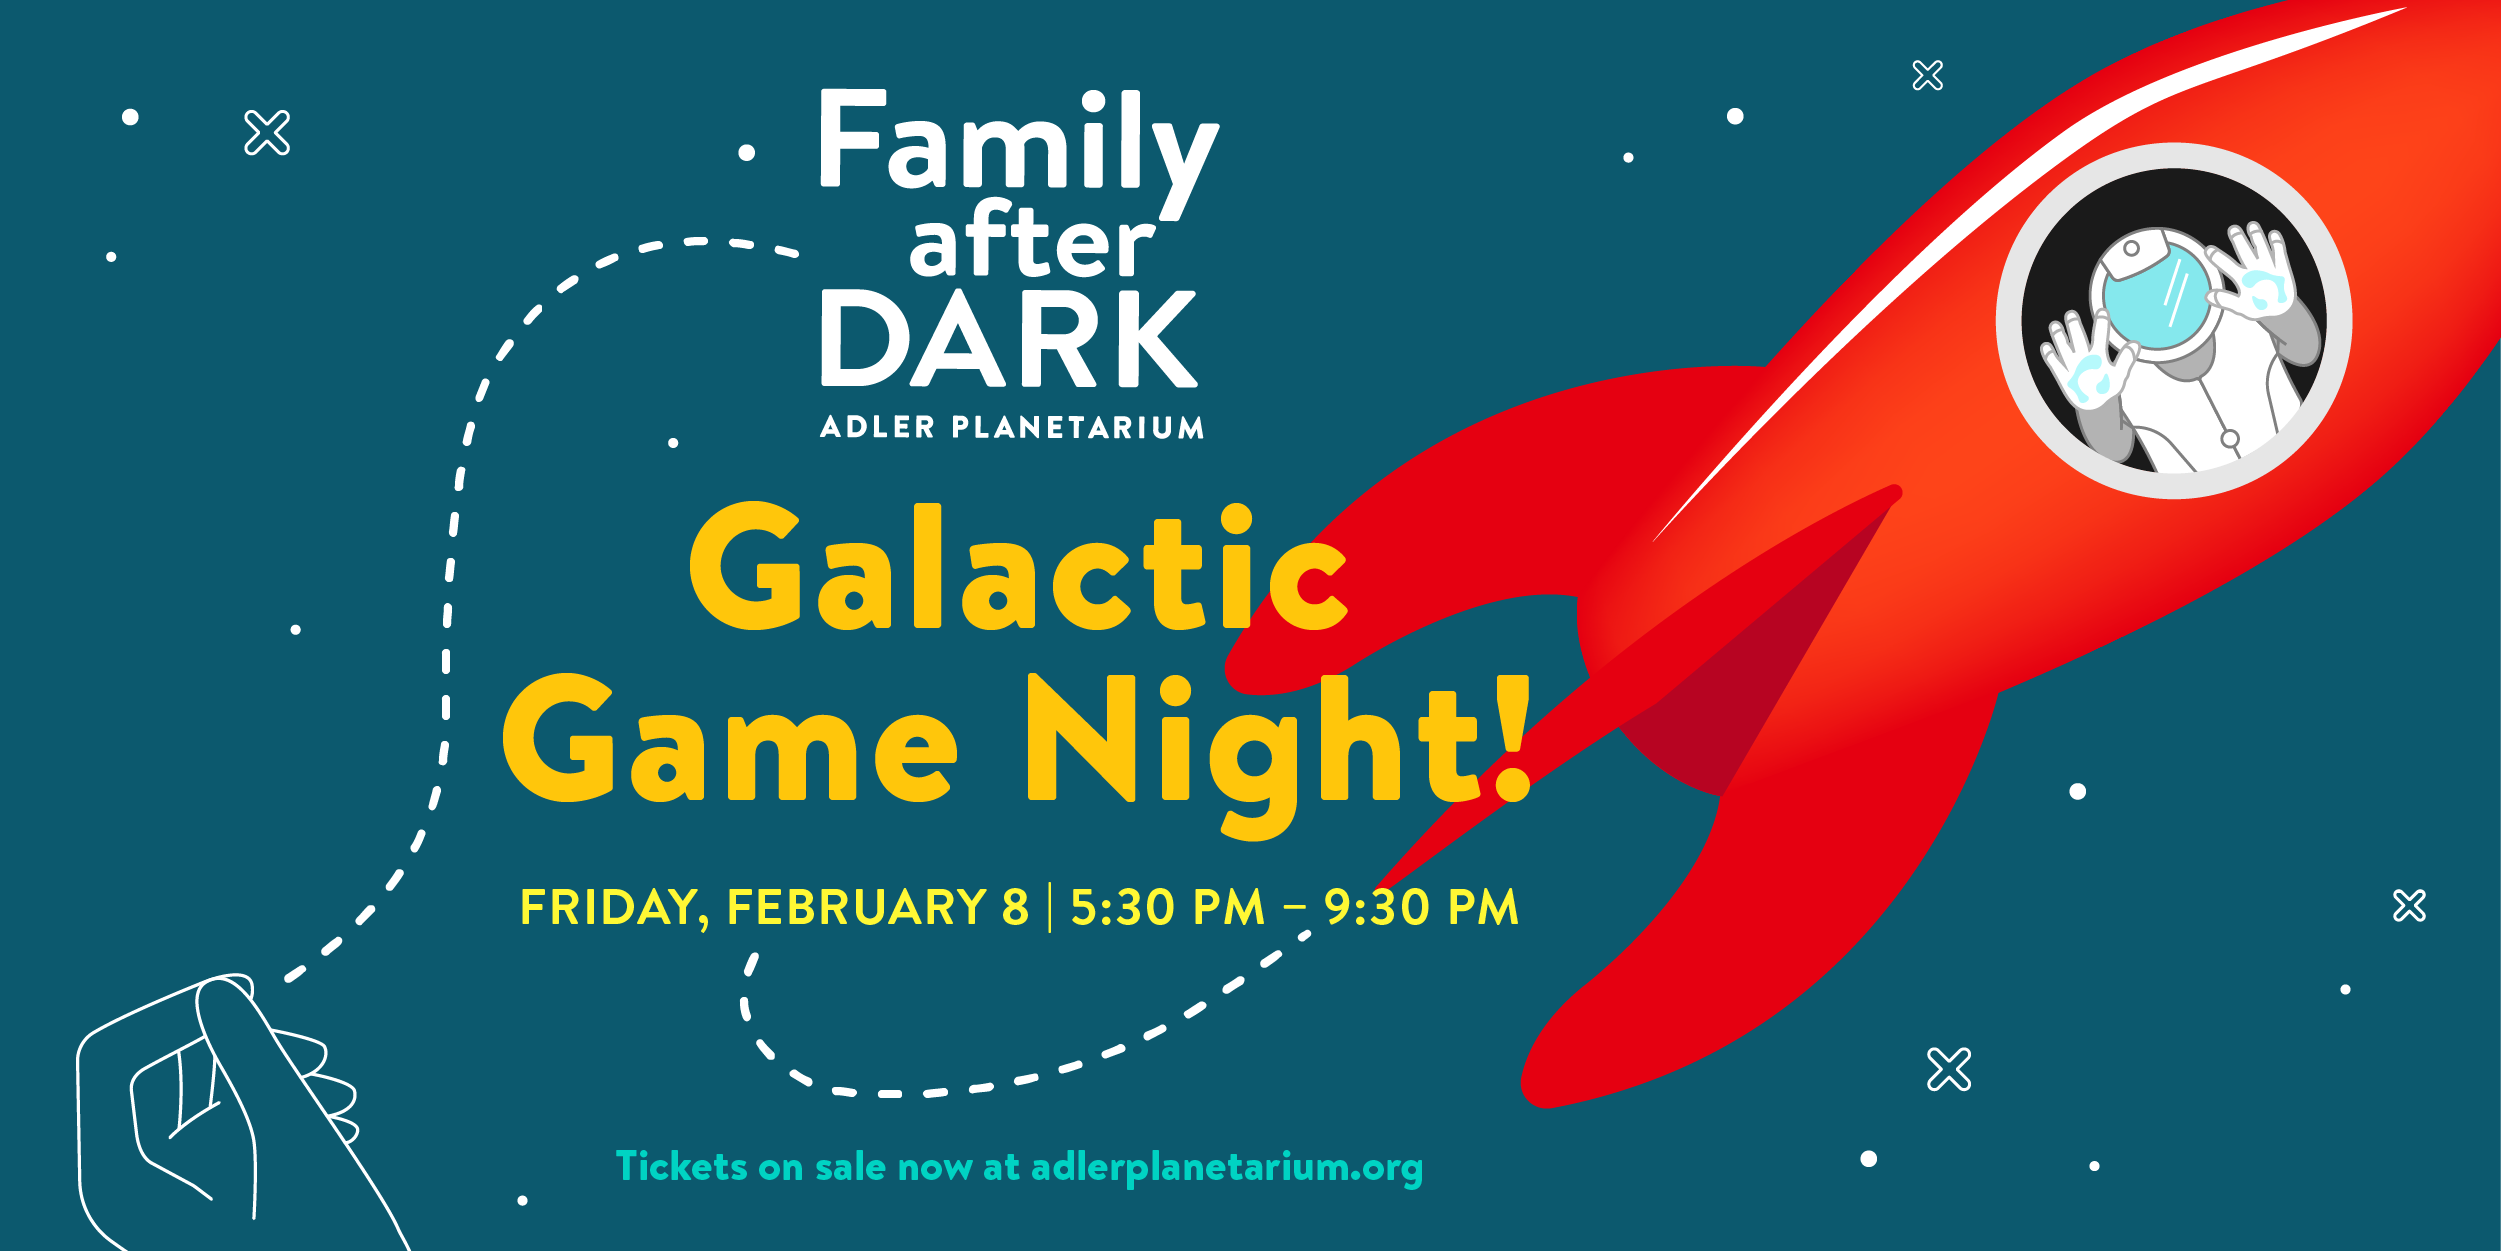 Family After Dark at Adler Planetarium - Game Night